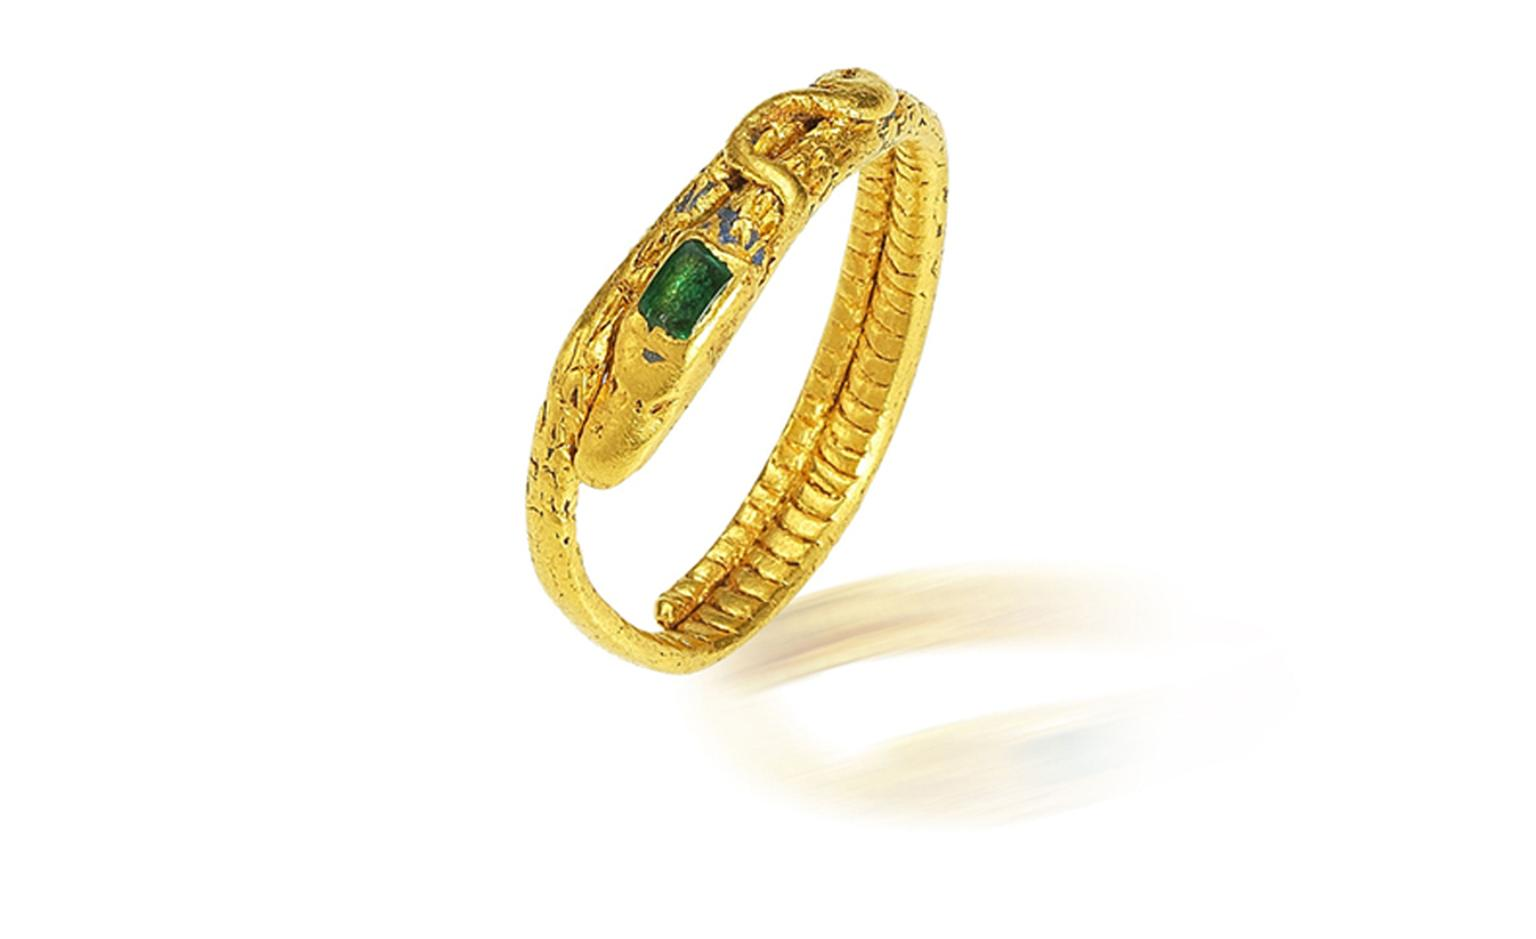 Lot 22. A gold and emerald snake ring, probably 14th-15th century. Estimate £4,000-6,000. SOLD FOR £4,375.